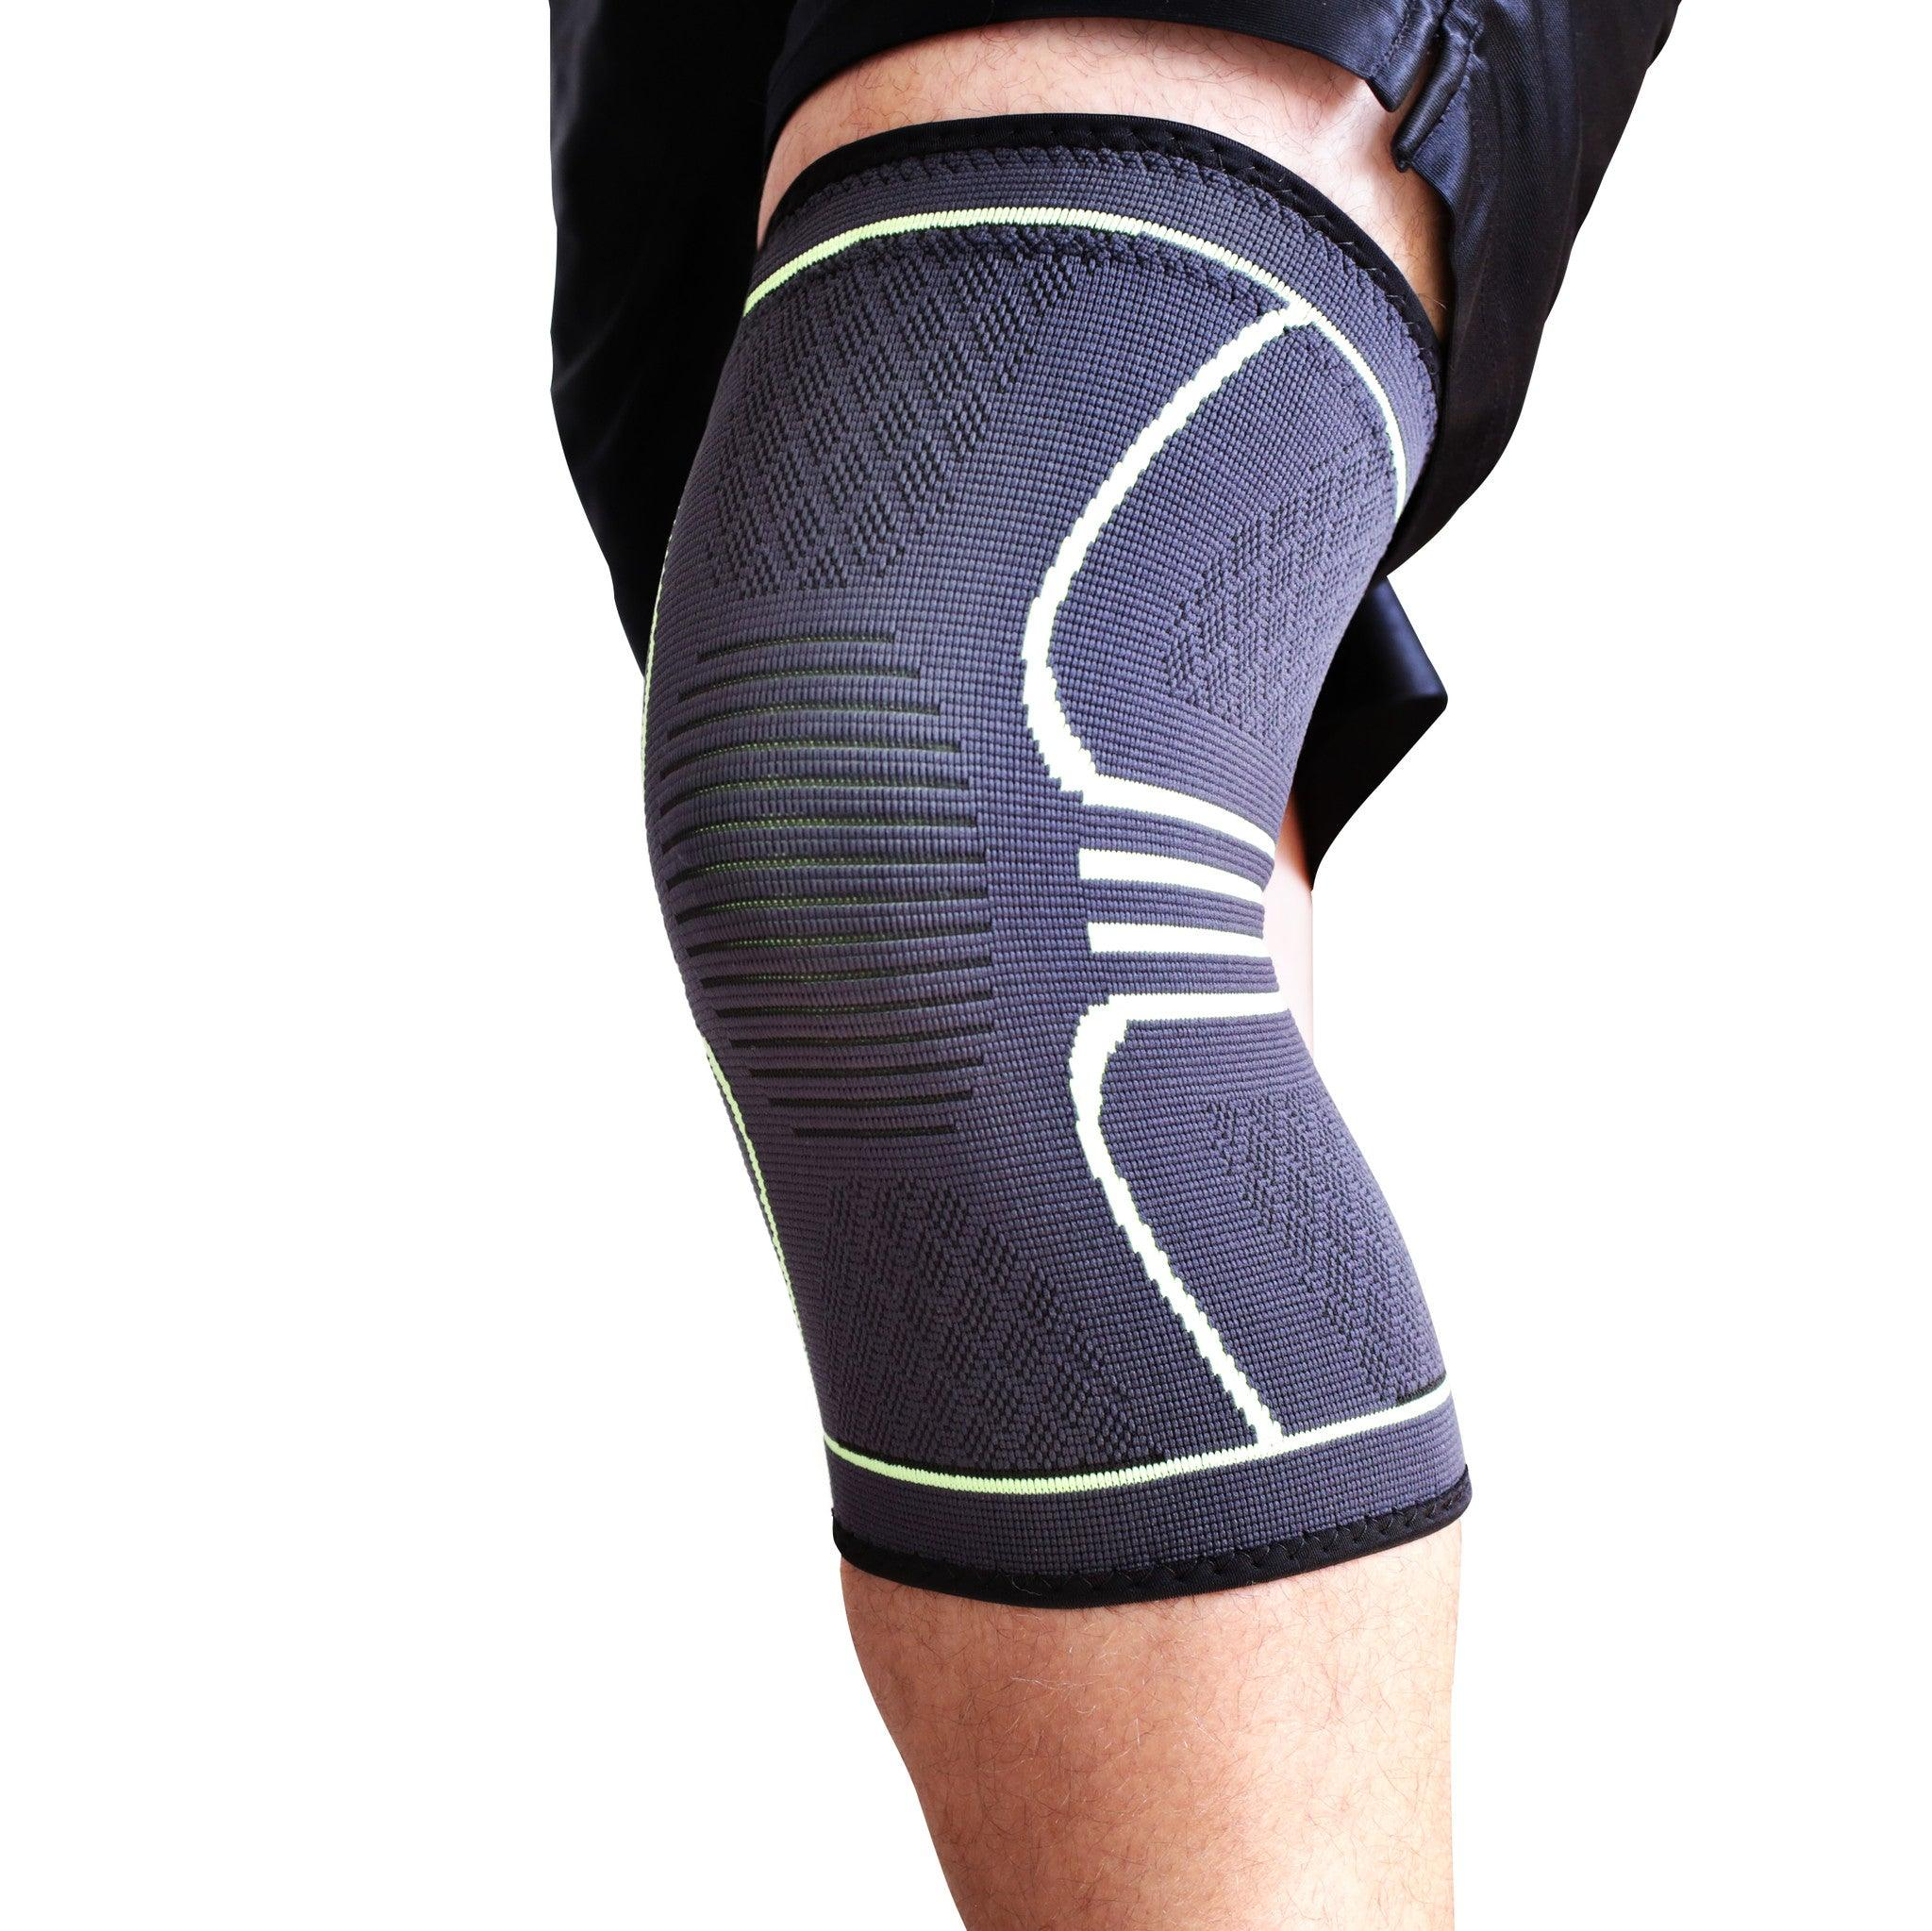 Knee brace (8 photos) - Photography and Web Design - Los Angeles, US based Shopify Experts Revo Designs